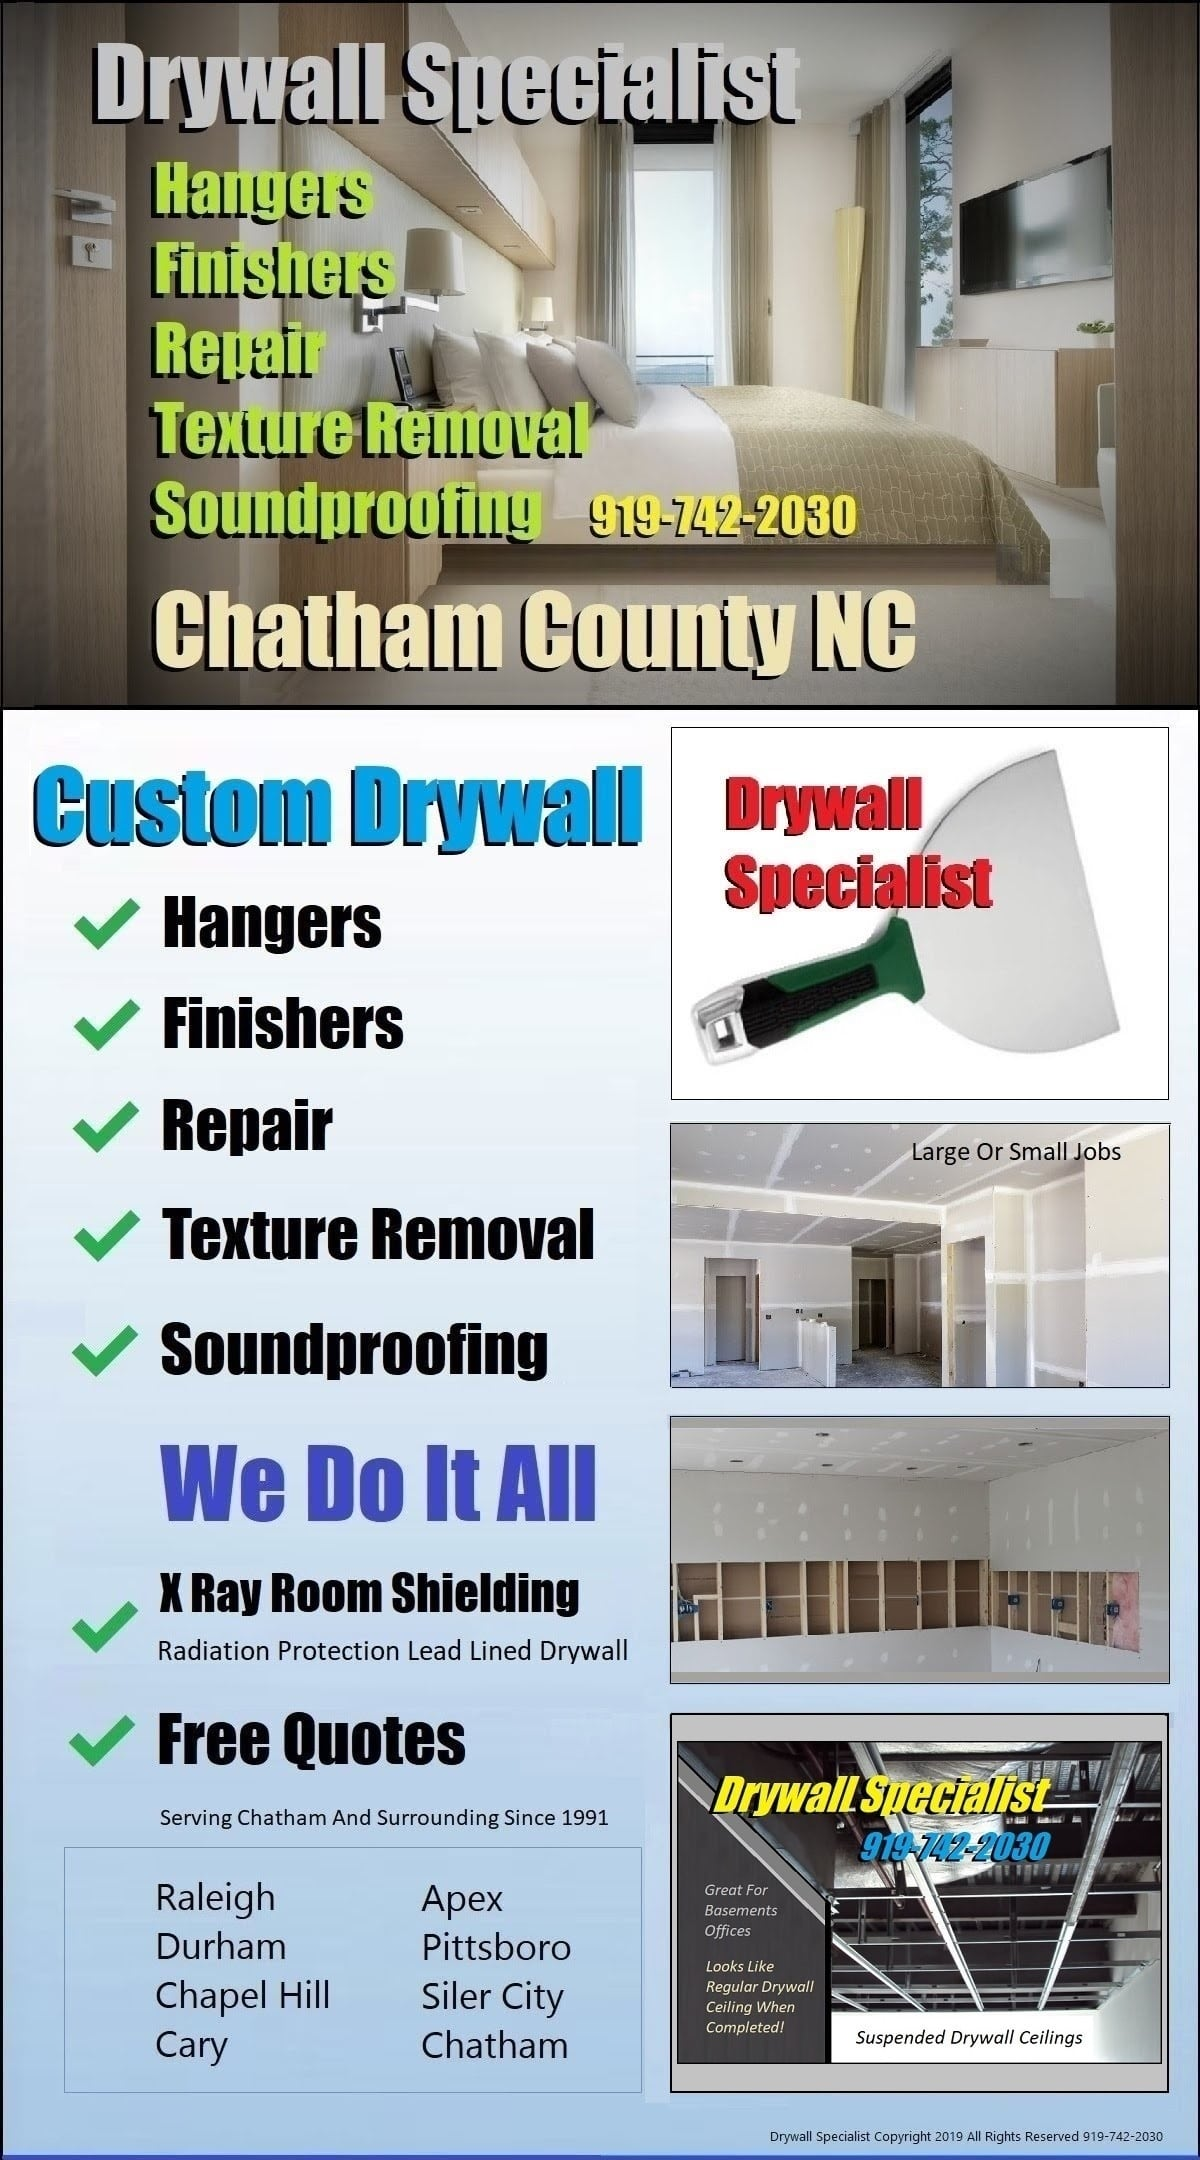 Nextdoor #DrywallInstallerFinisher | Pittsboro North Carolina